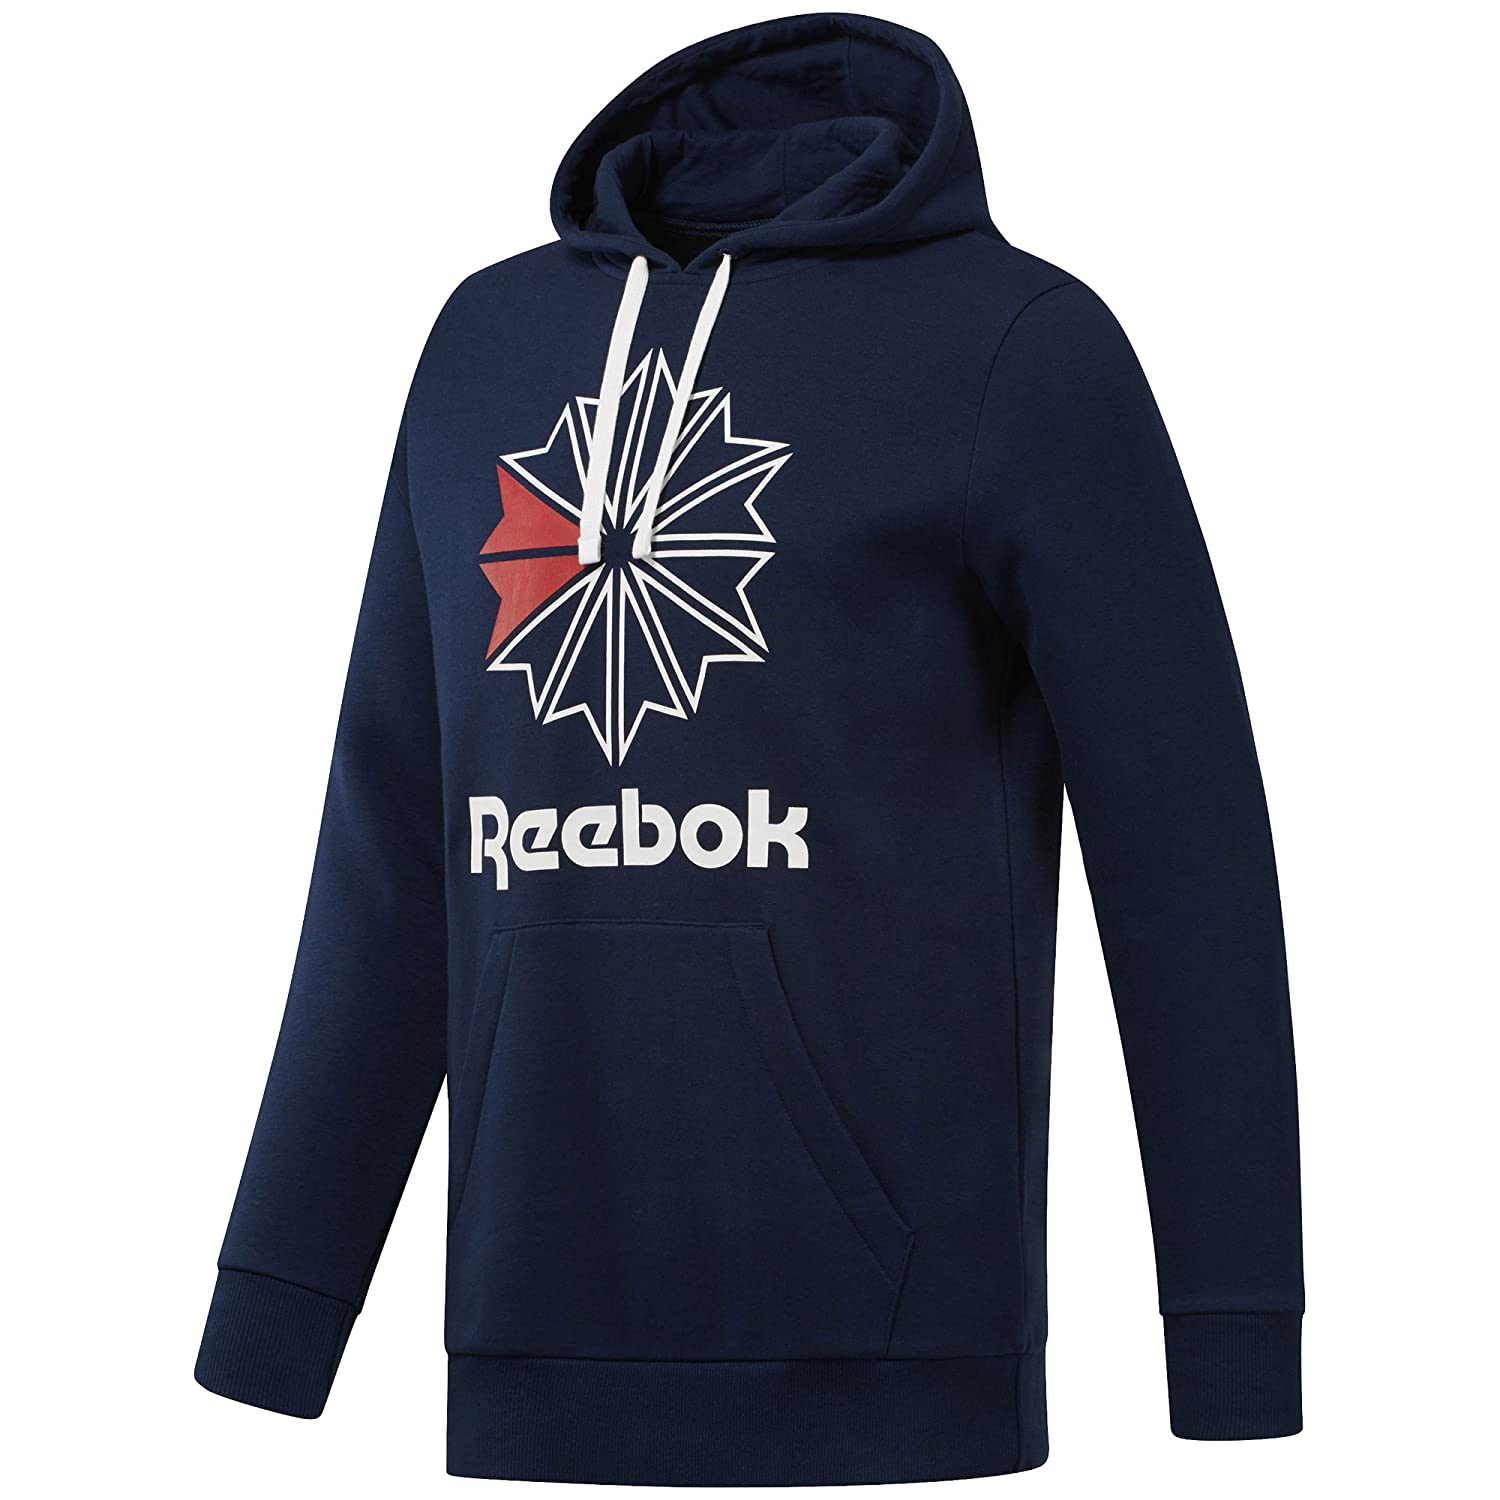 Reebok Mens Starcrest Hoody Hoodies